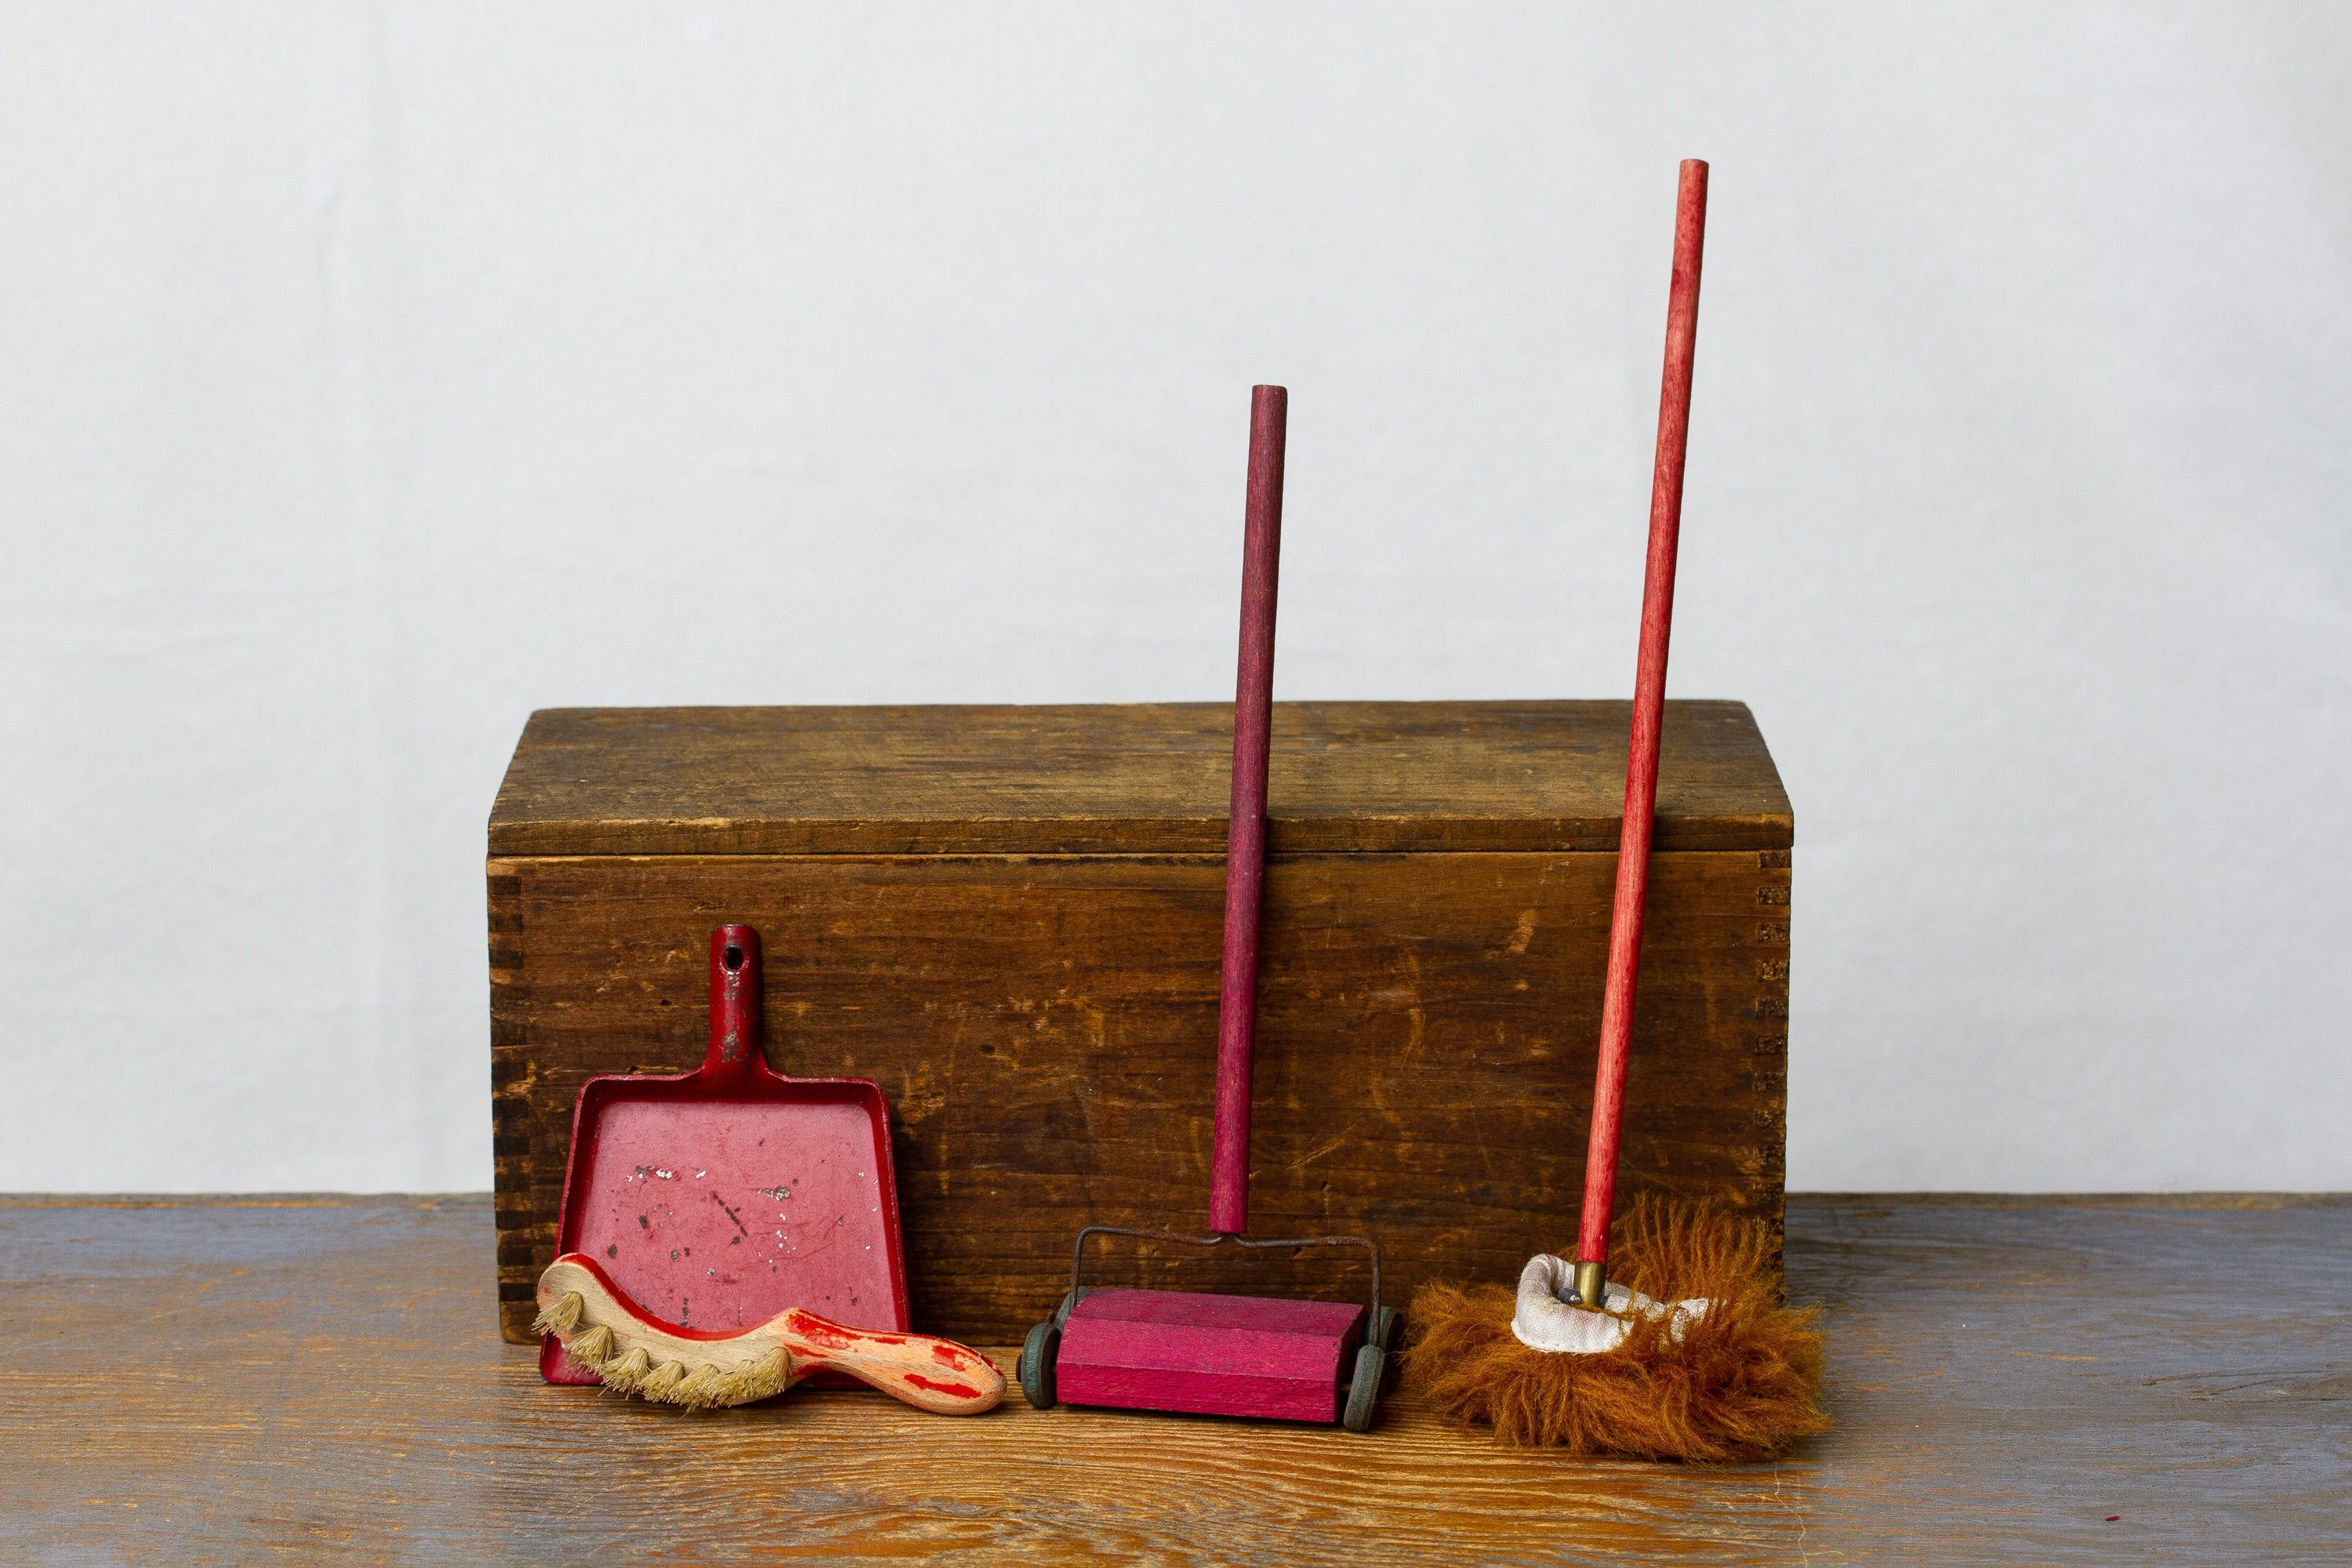 Vintage Dollhouse Larger Scale Collection of Cleaning Supplies - Dust Pan & Broom, Carpet Sweeper, Mop - Miniature Doll Accessories